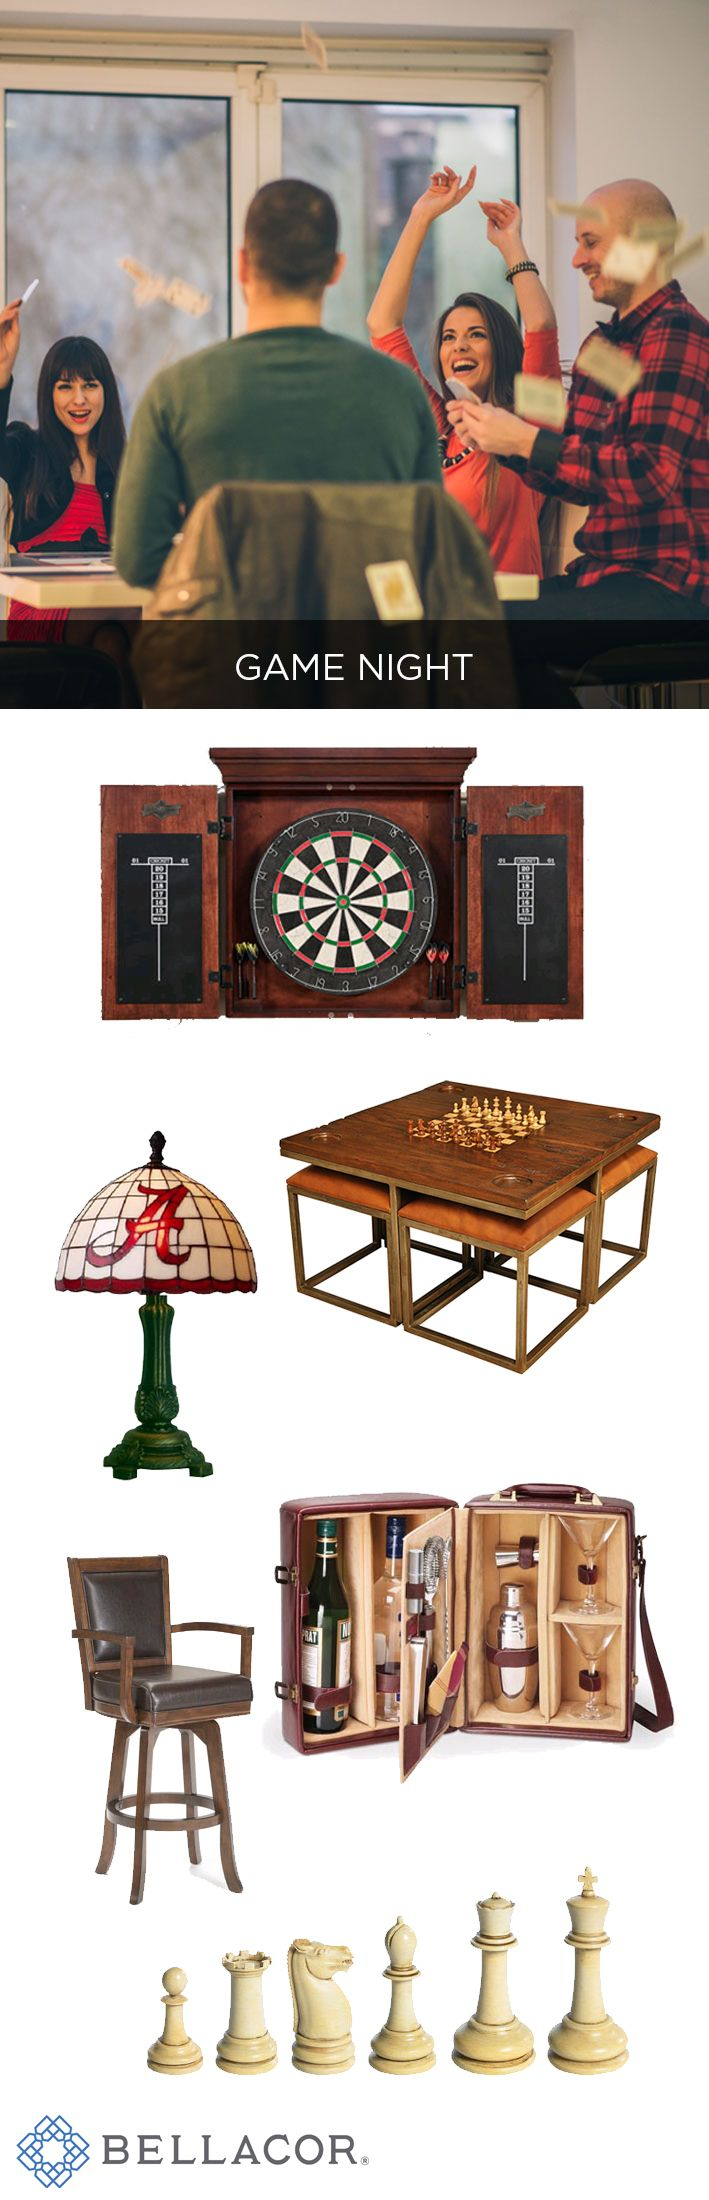 Game Night! Shop game tables, serving carts, lamps and more at the Bellacor Holiday Market. http://www.bellacor.com/results.cfm?Ns=P_hvhmIndex&N=4294856244&Nso=0&partid=social_pinterest